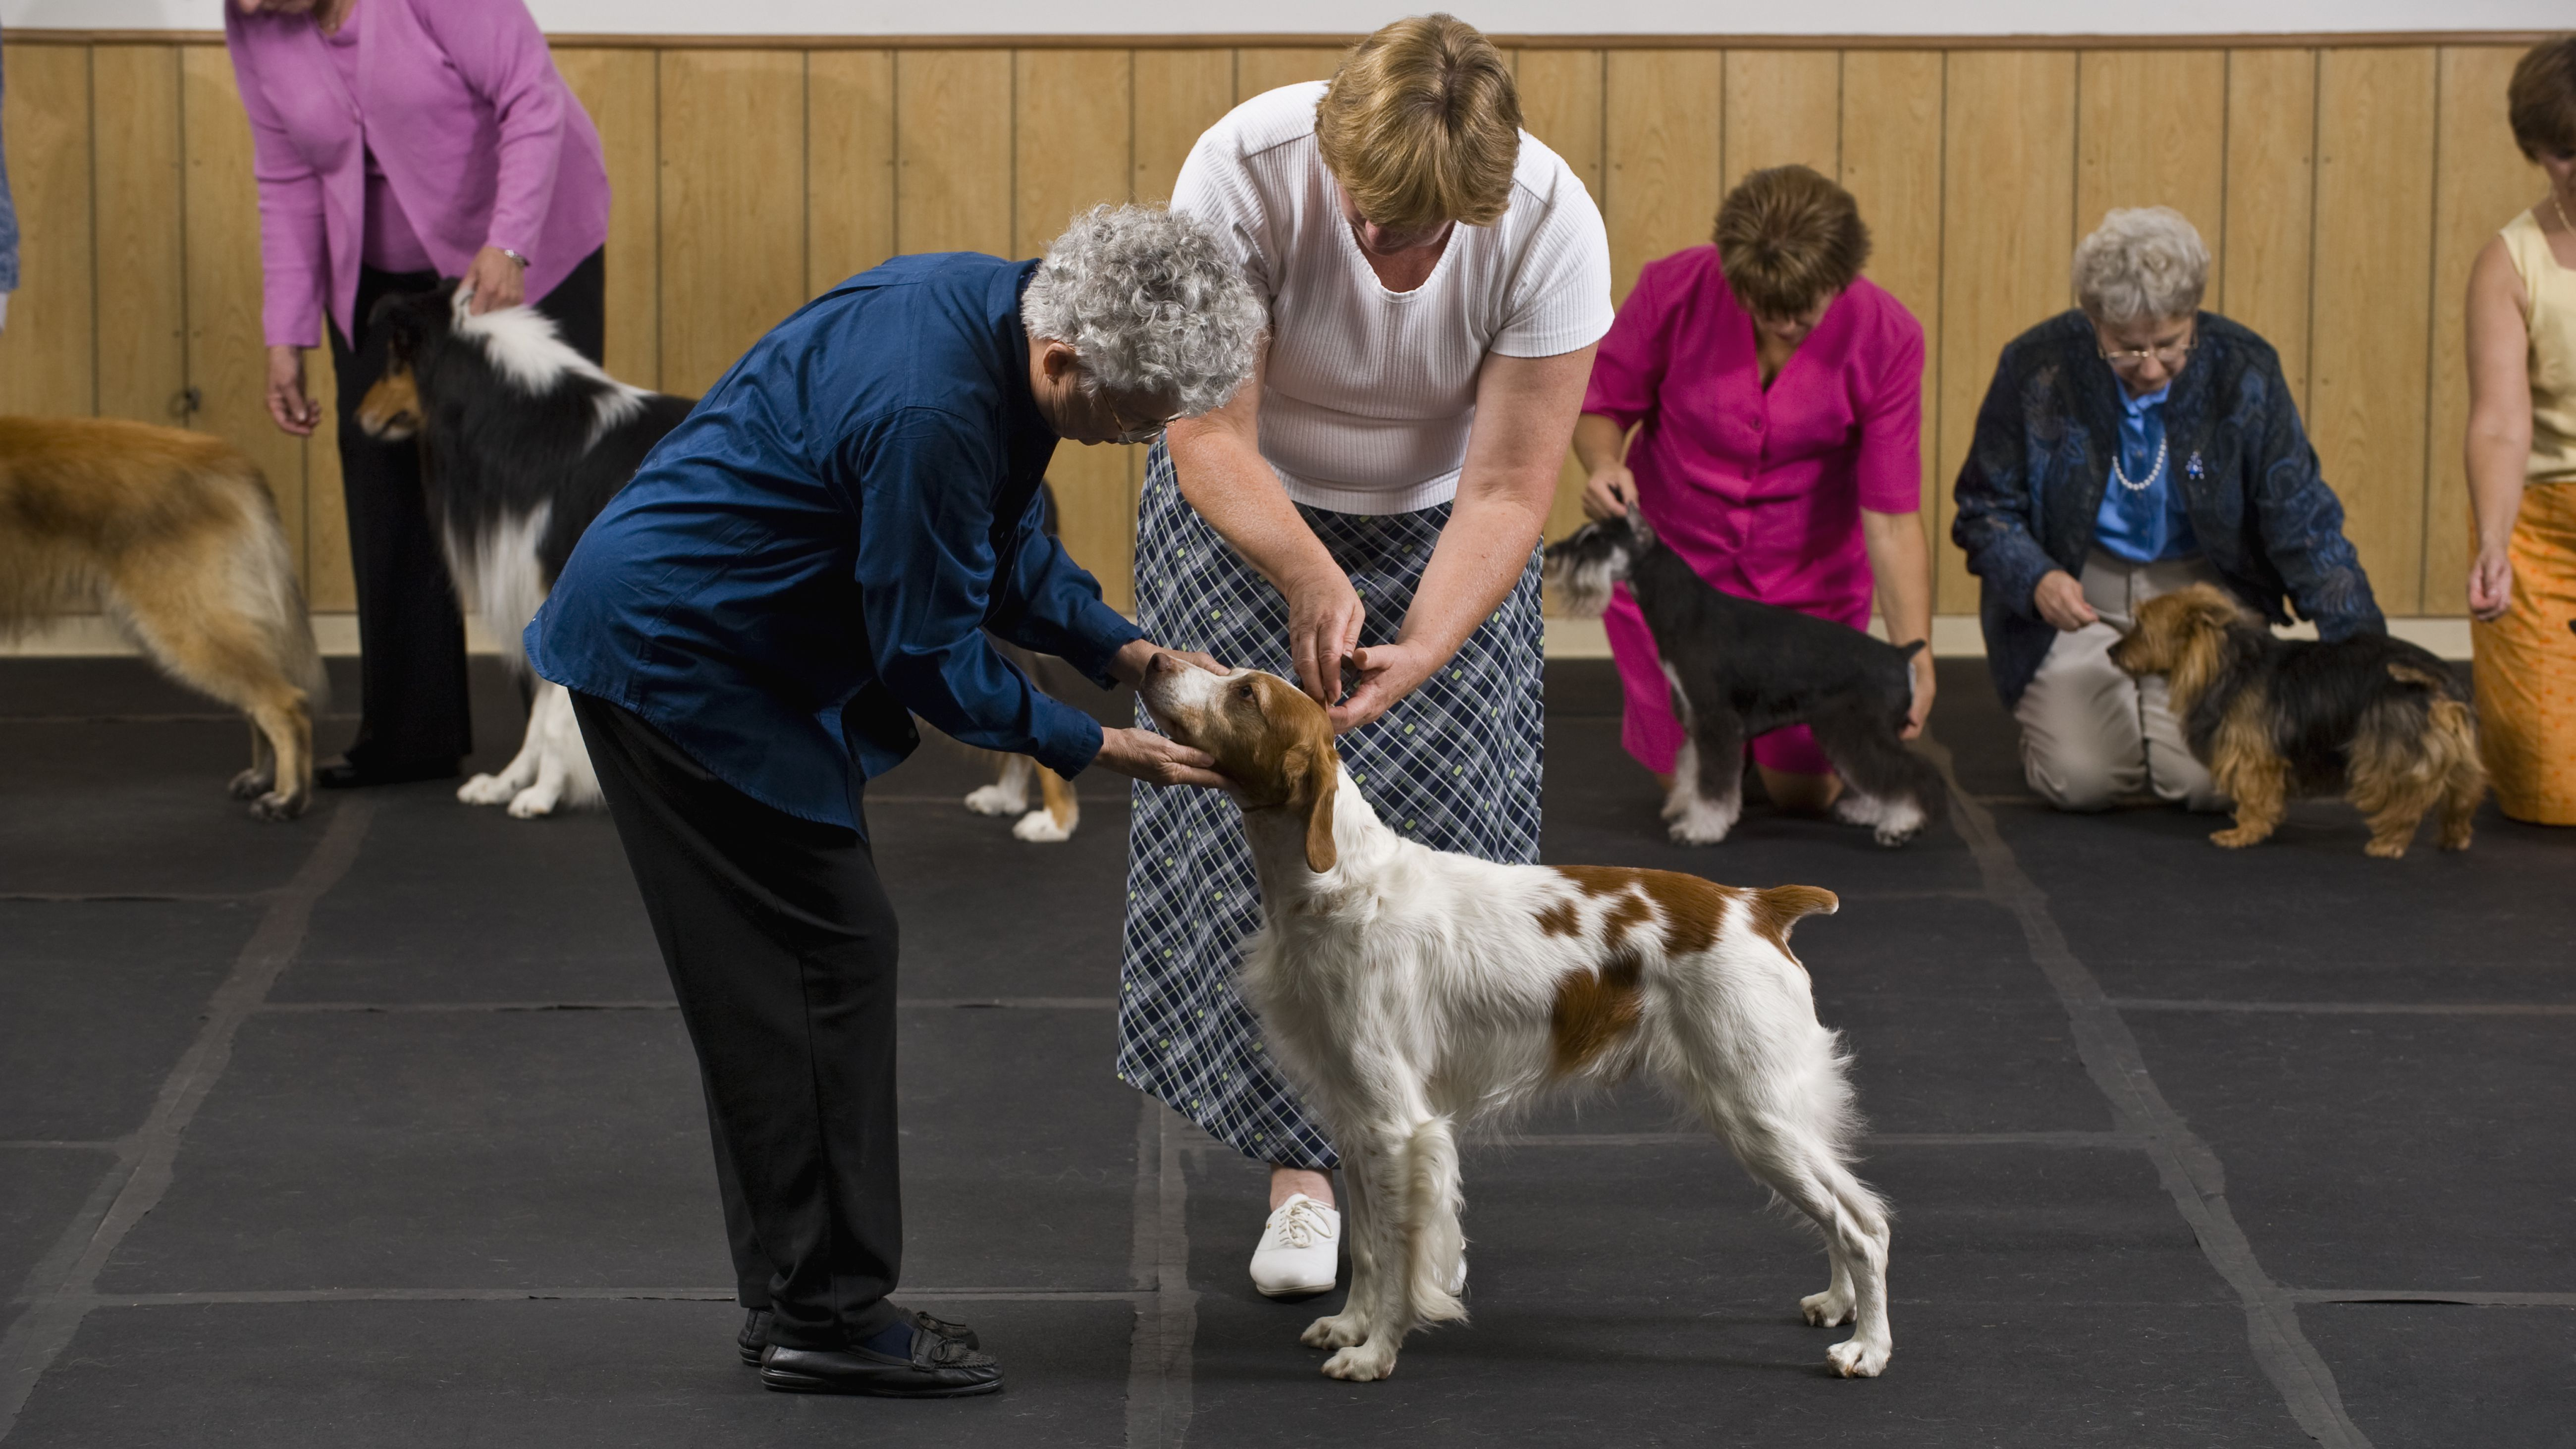 Why Animal Rights Activist Are Against the AKC